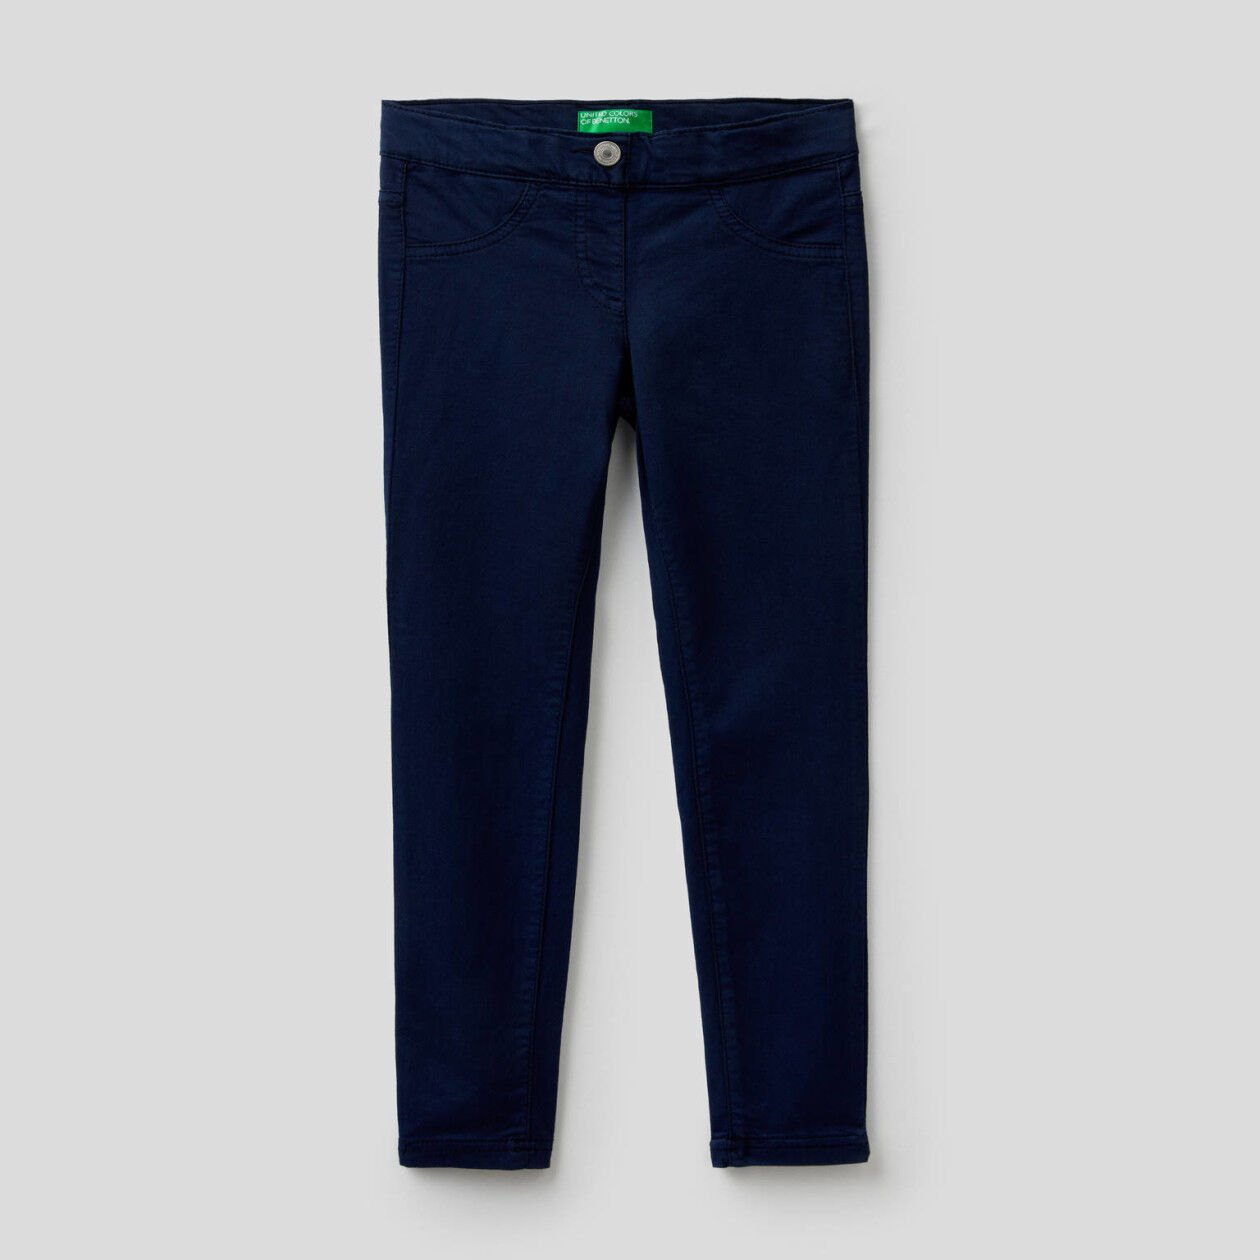 Twill trousers in stretch cotton blend.